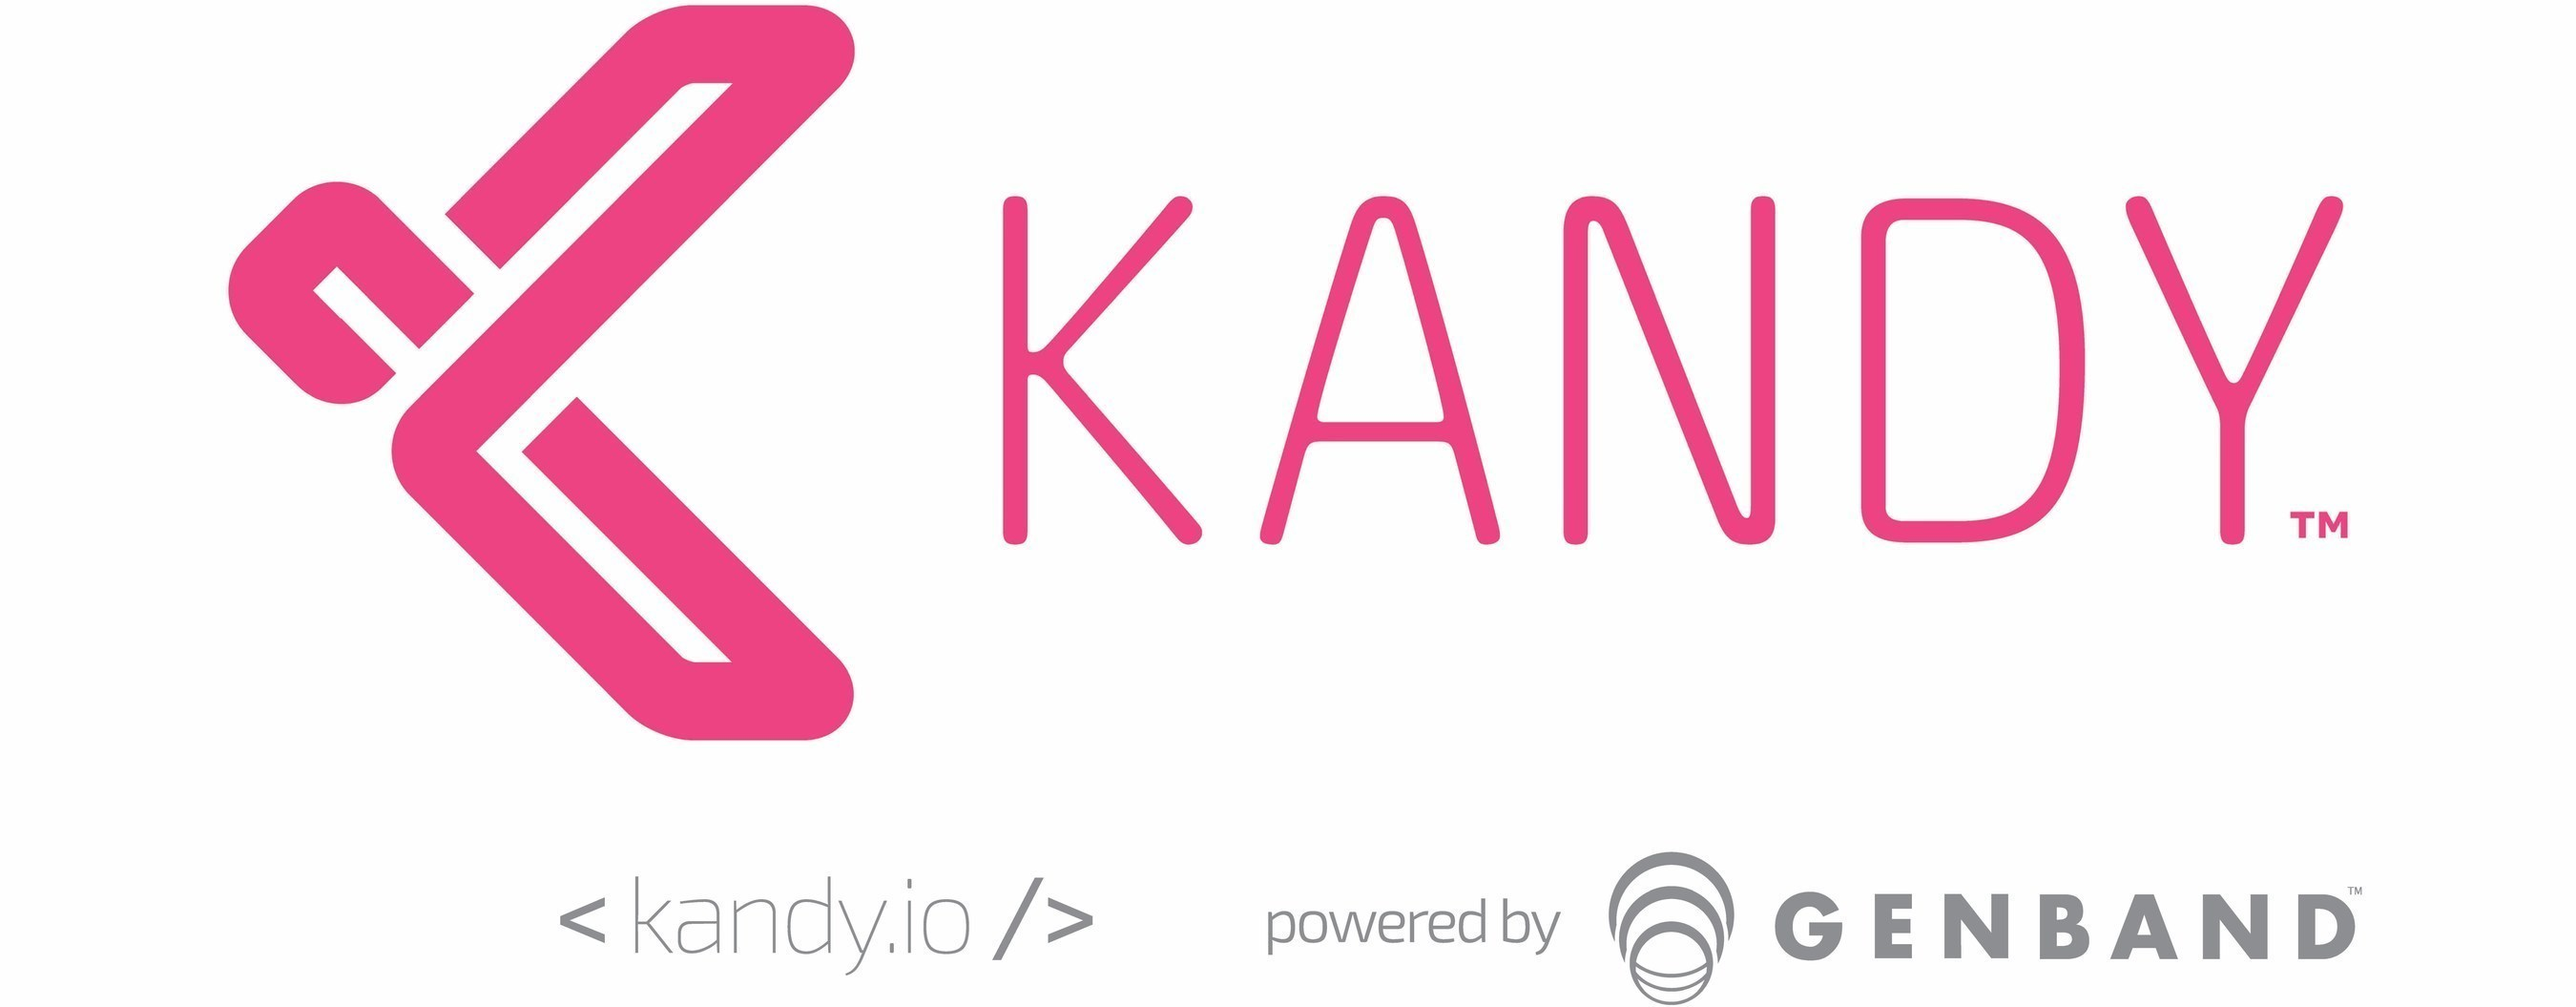 Kandy, powered by GENBAND